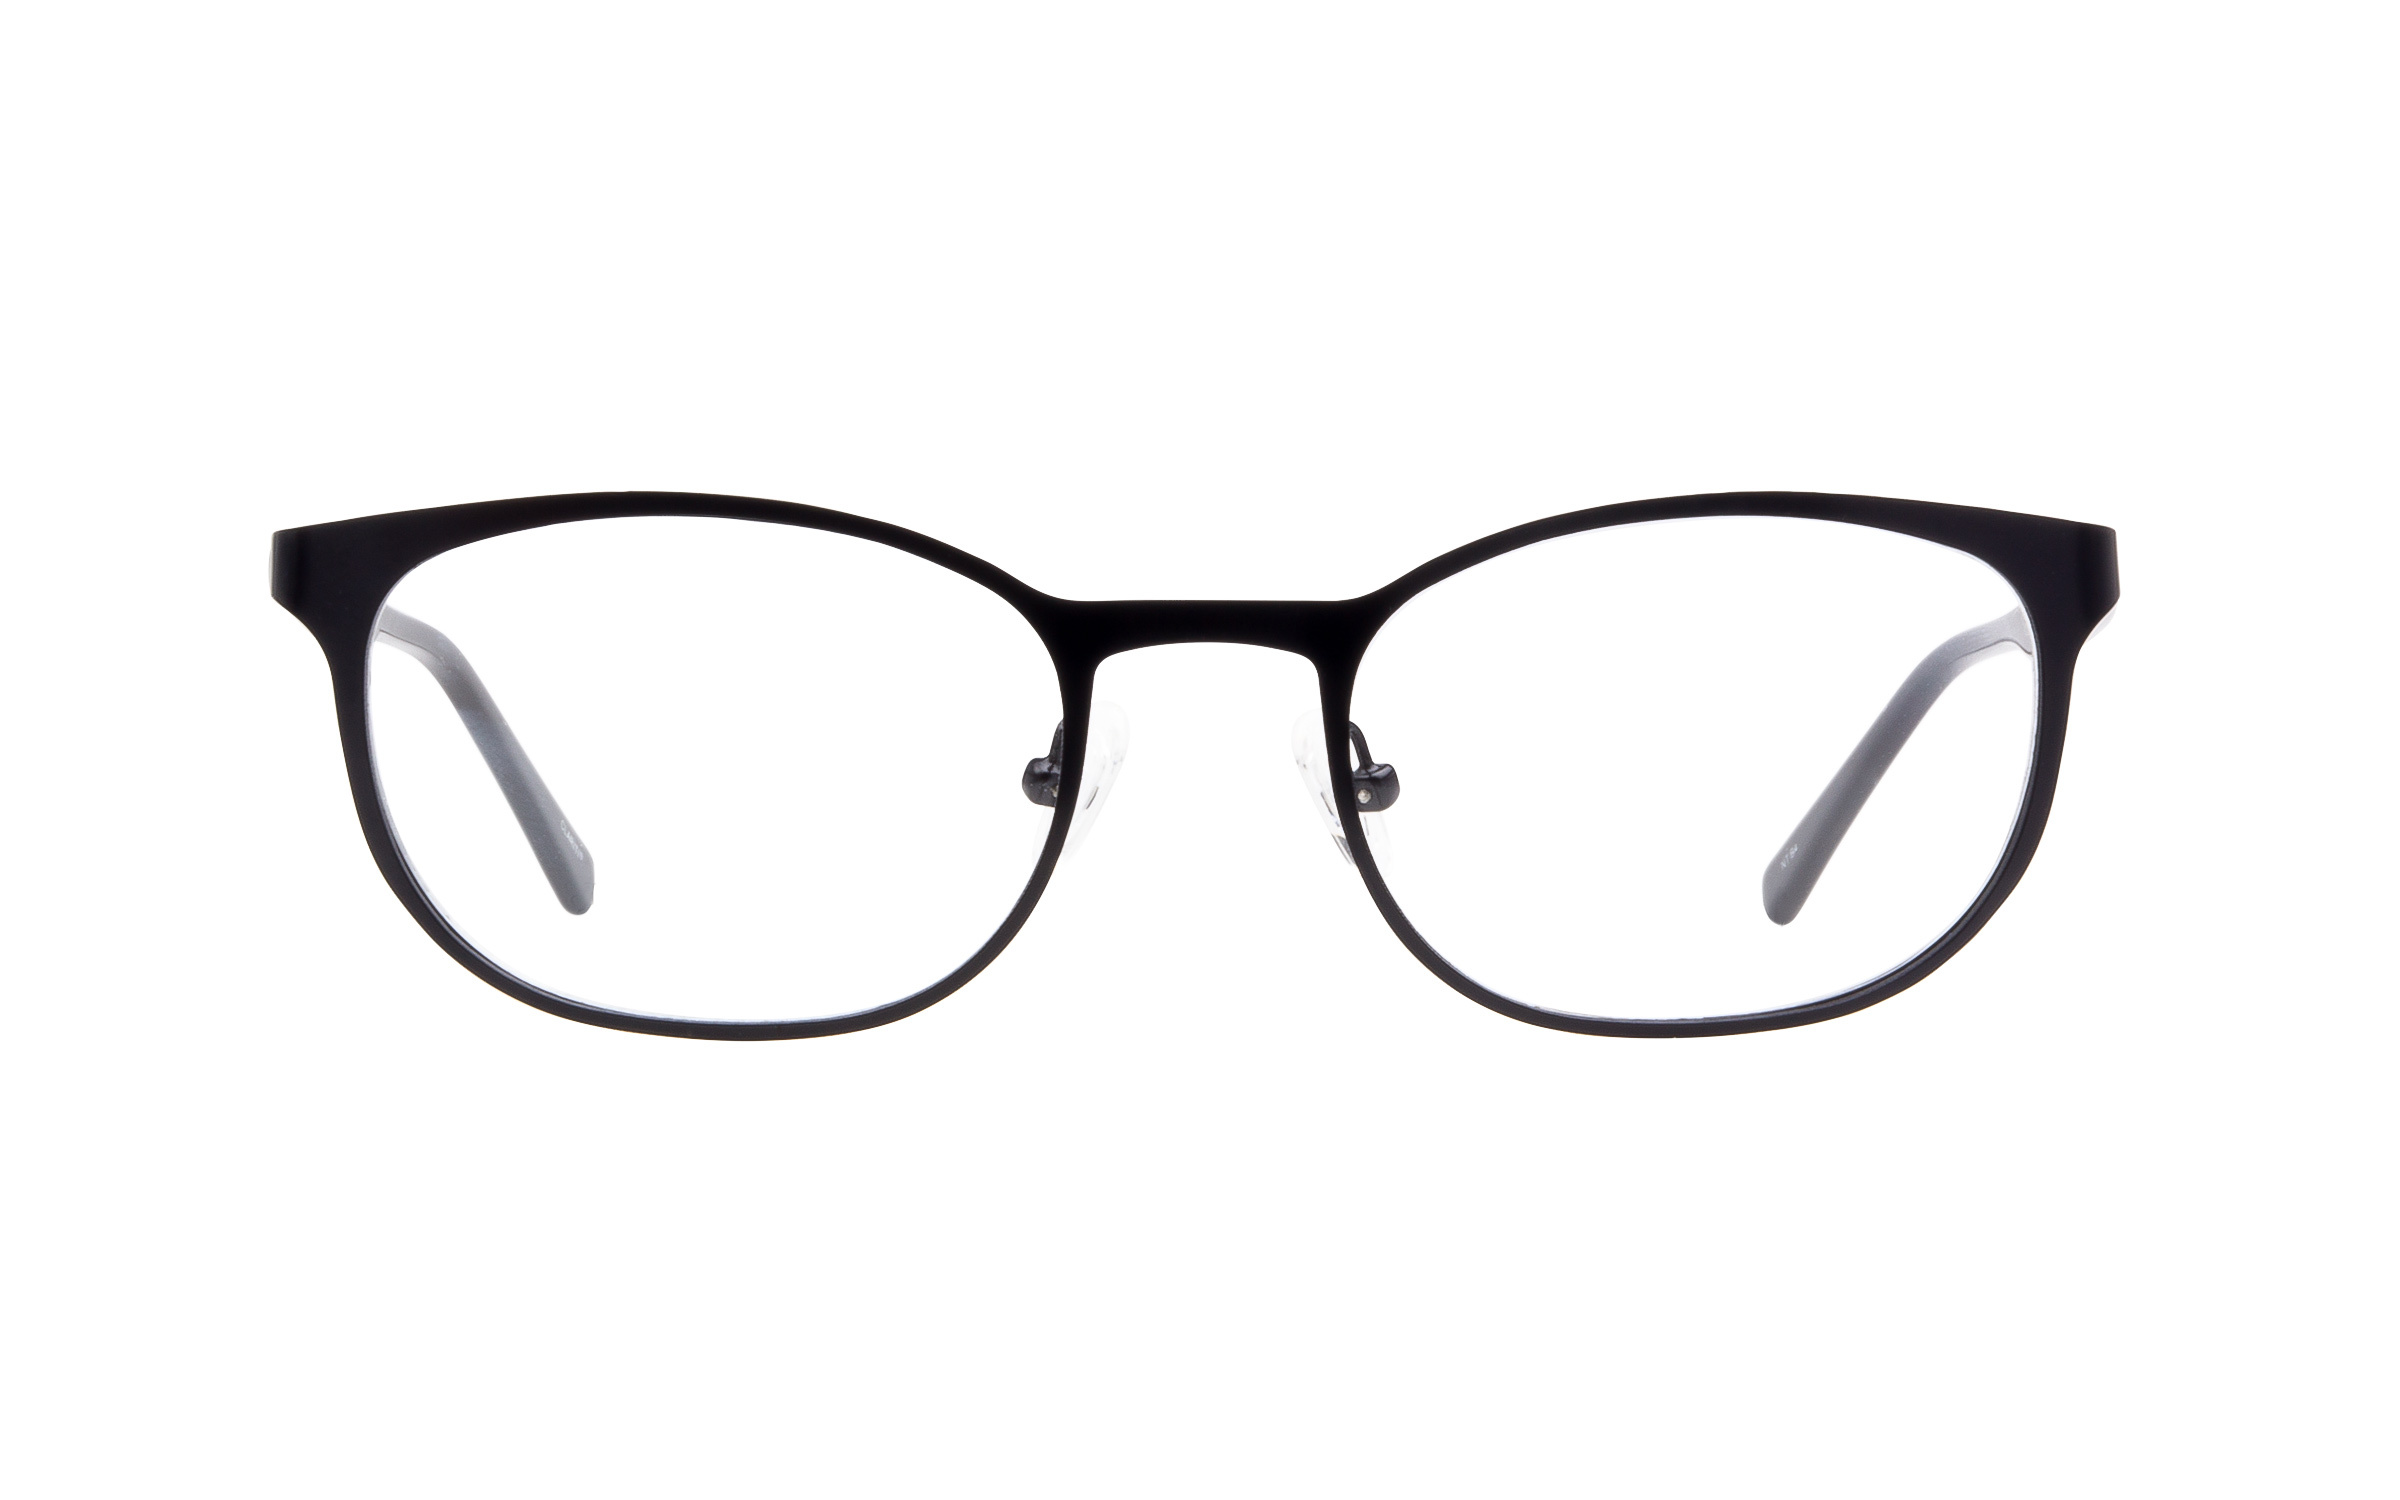 cheap designer eyeglasses  Prescription Glasses Online - Complete Eyeglasses from $35